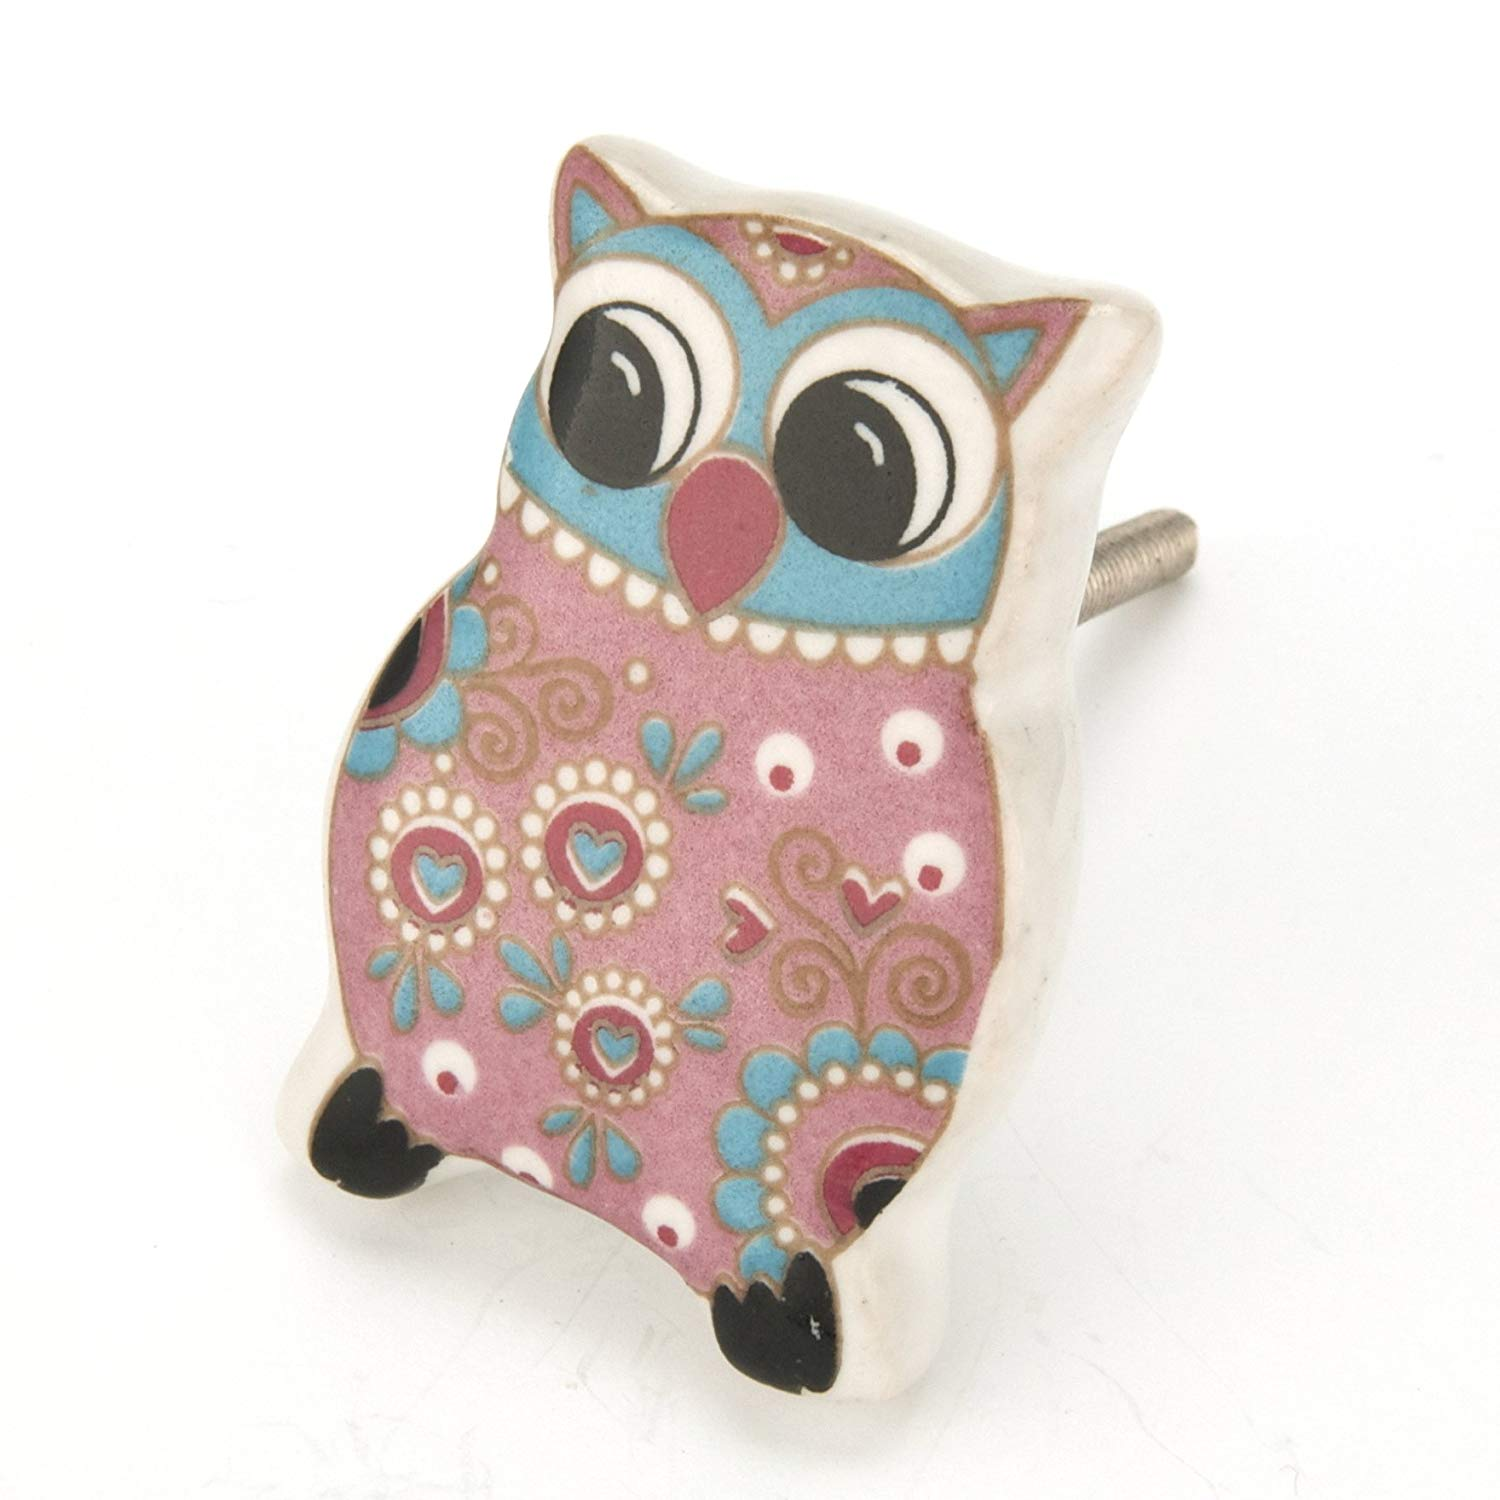 Pink Paisley Owl Ceramic Cabinet Knobs, Drawer Pulls & Handles Set/4pc ~ C94 Ceramic Owl Knobs for Children's Decor, Baby's Nursery, Cabinets, Furniture or Bathroom Vanity with Chrome Hardware.